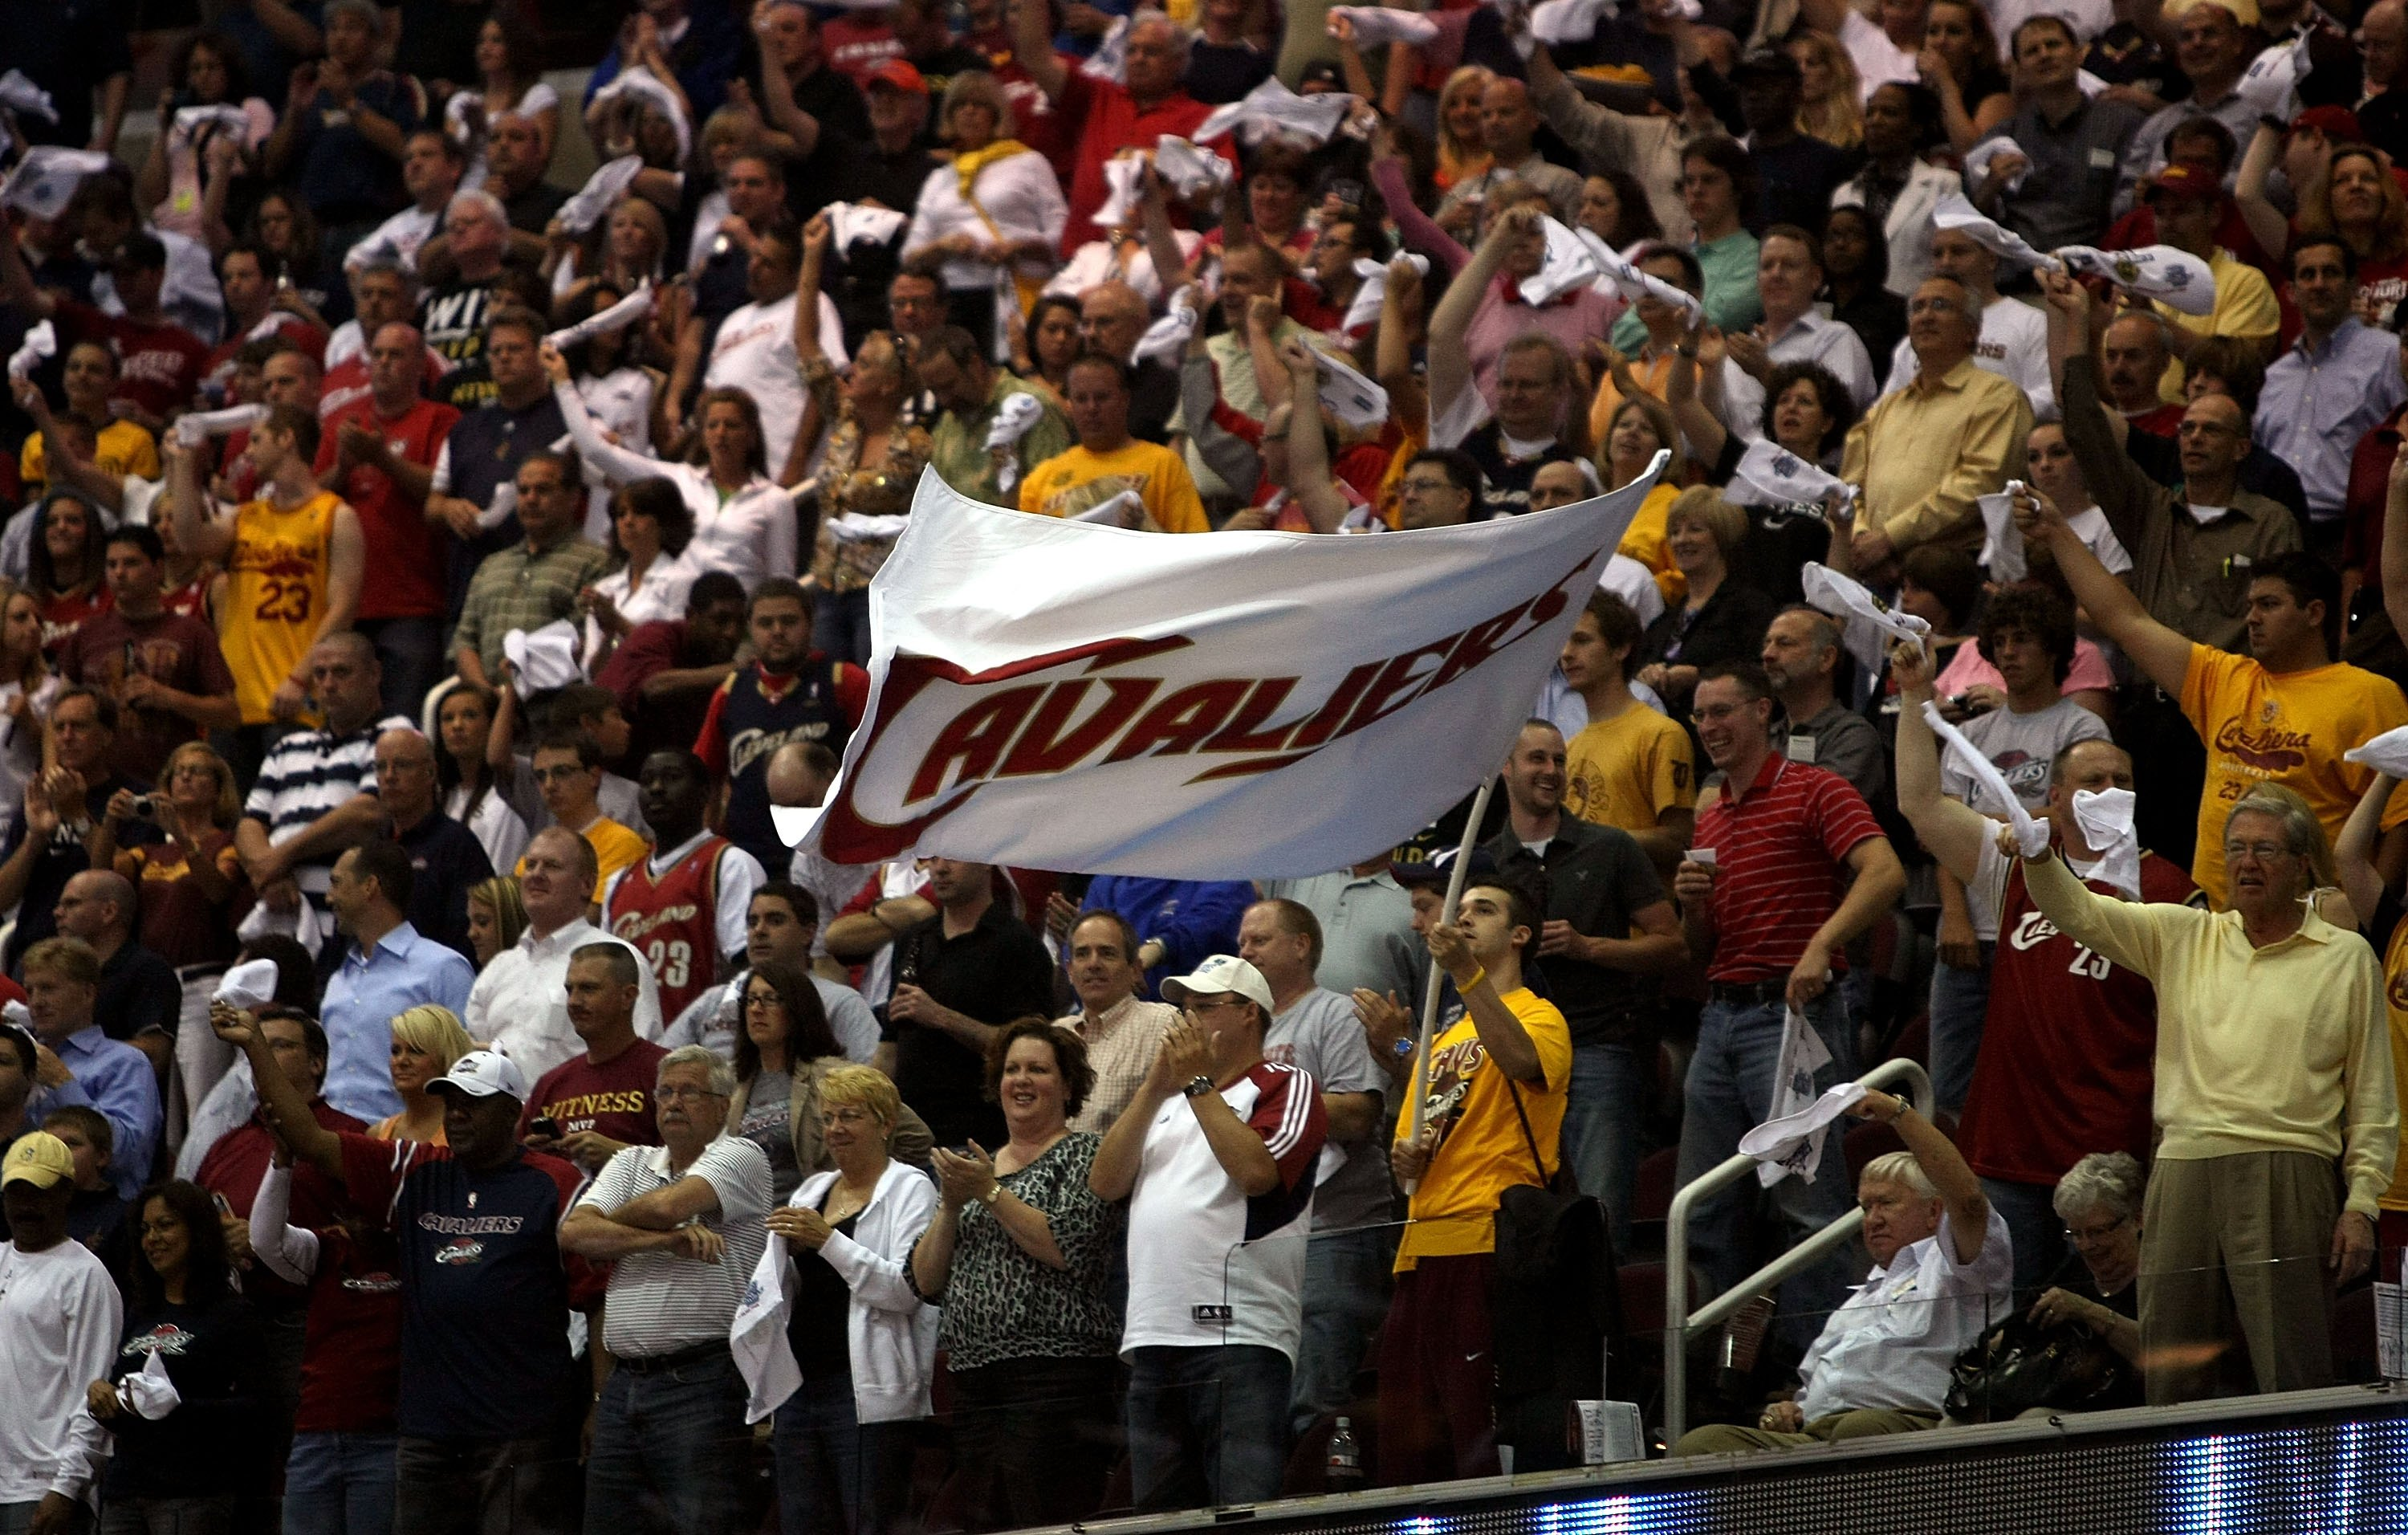 CLEVELAND - MAY 28: Fans wave a Cavaliers flag during Game Five of the Eastern Conference Finals between the Cleveland Cavaliers and the Orlando Magic  during the 2009 Playoffs at Quicken Loans Arena on May 28, 2009 in Cleveland, Ohio. NOTE TO USER: User